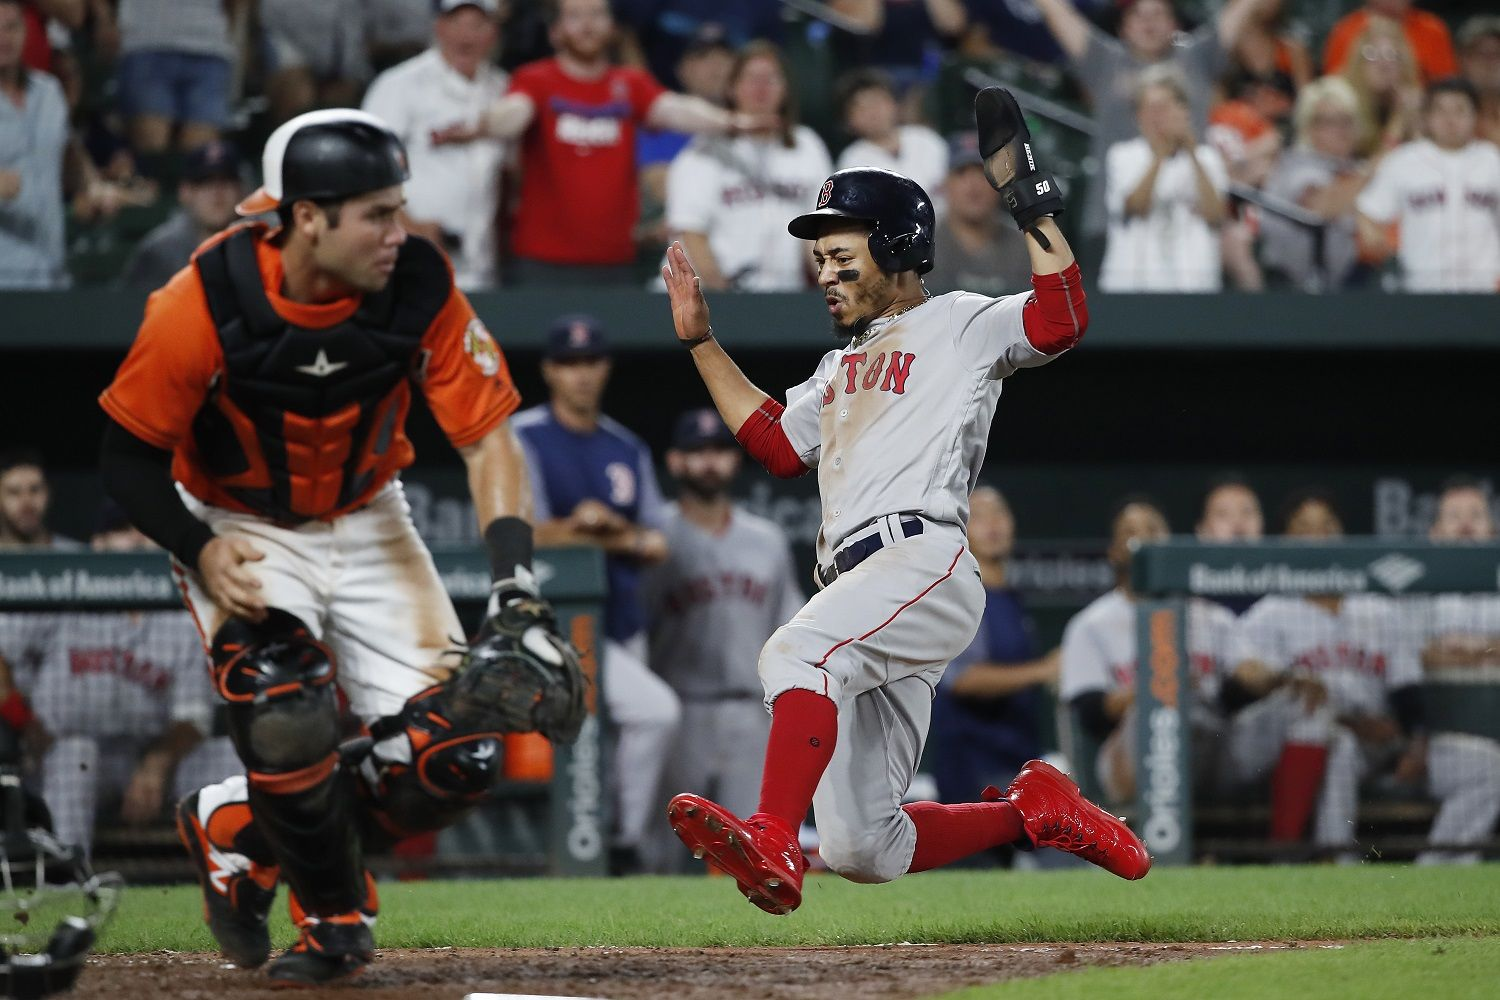 BALTIMORE, MD - AUGUST 11: Mookie Betts #50 of the Boston Red Sox scores a run on a single by Brock Holt #12 (not pictured) in the ninth inning against the Baltimore Orioles during game two of a doubleheader at Oriole Park at Camden Yards on August 11, 2018 in Baltimore, Maryland. (Photo by Patrick McDermott/Getty Images)